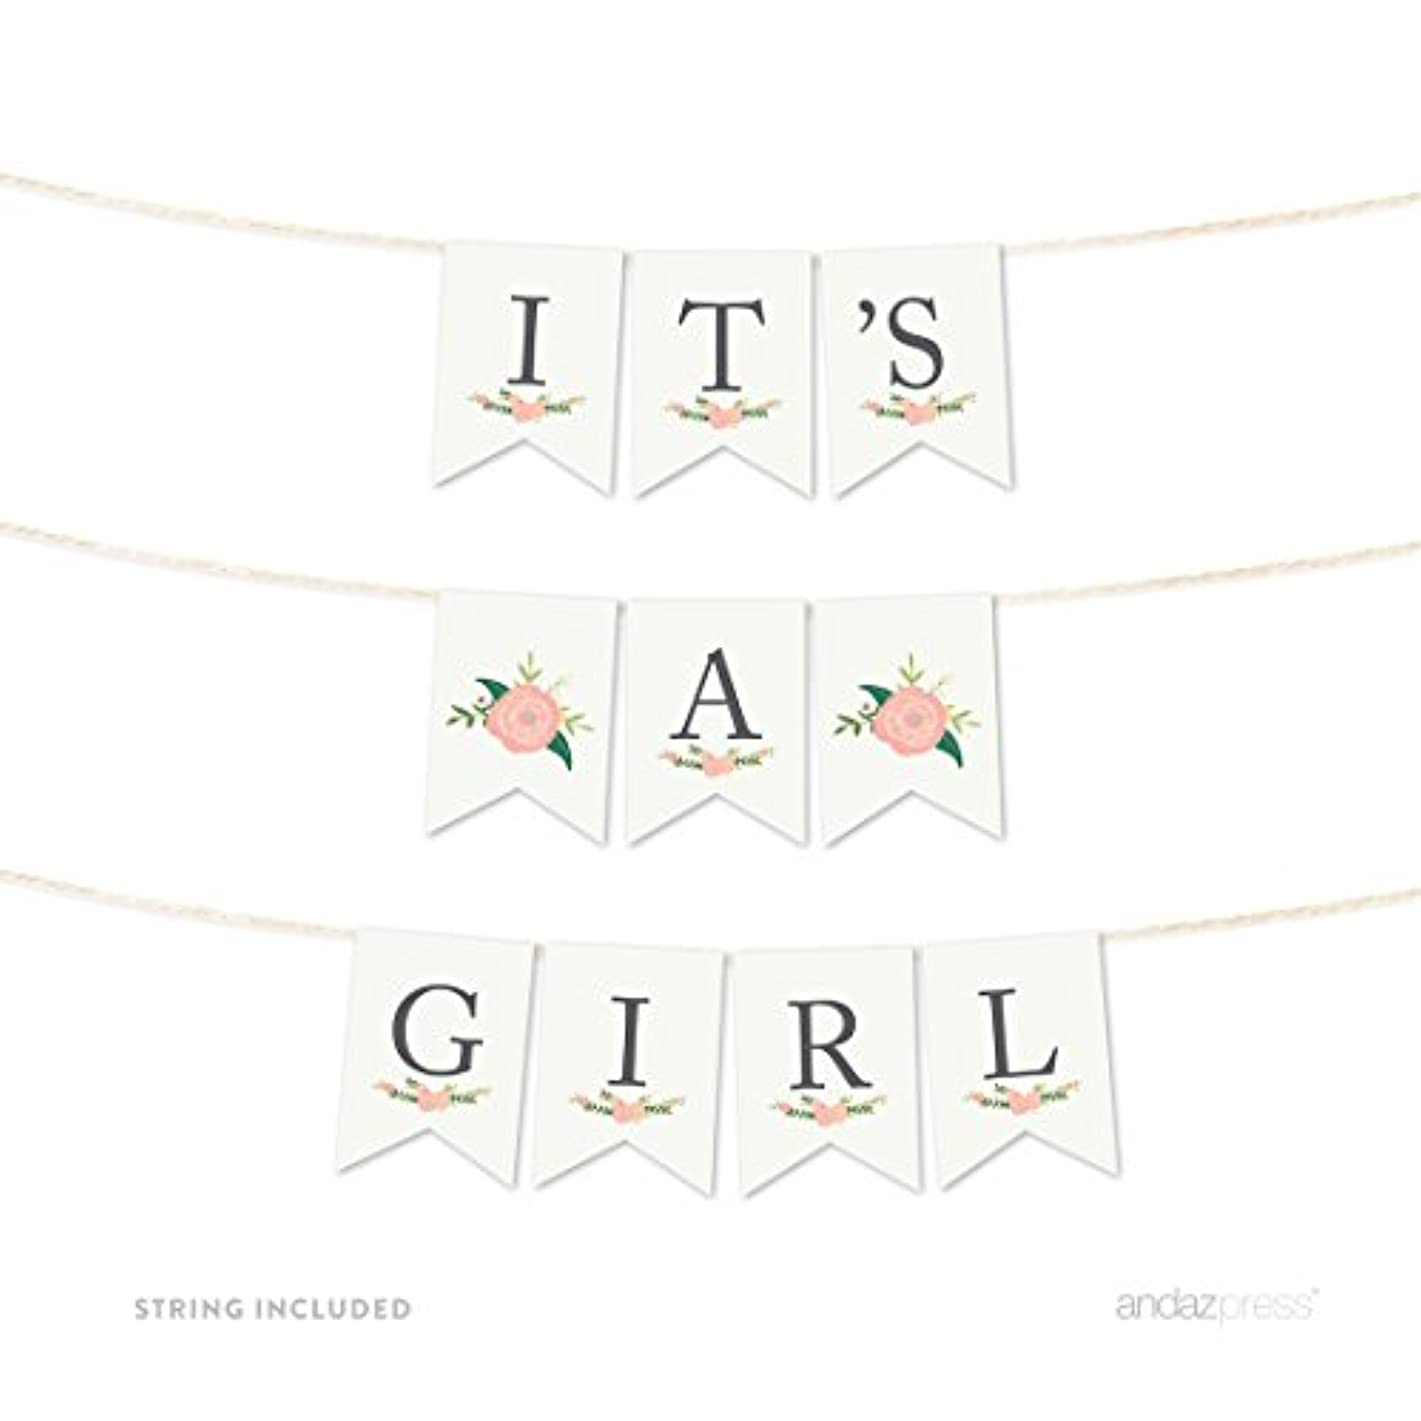 Andaz Press Girl Baby Shower Hanging Pennant Garland Party Banner with String, Floral Roses, It's a Girl!, 5-feet, 1-Set